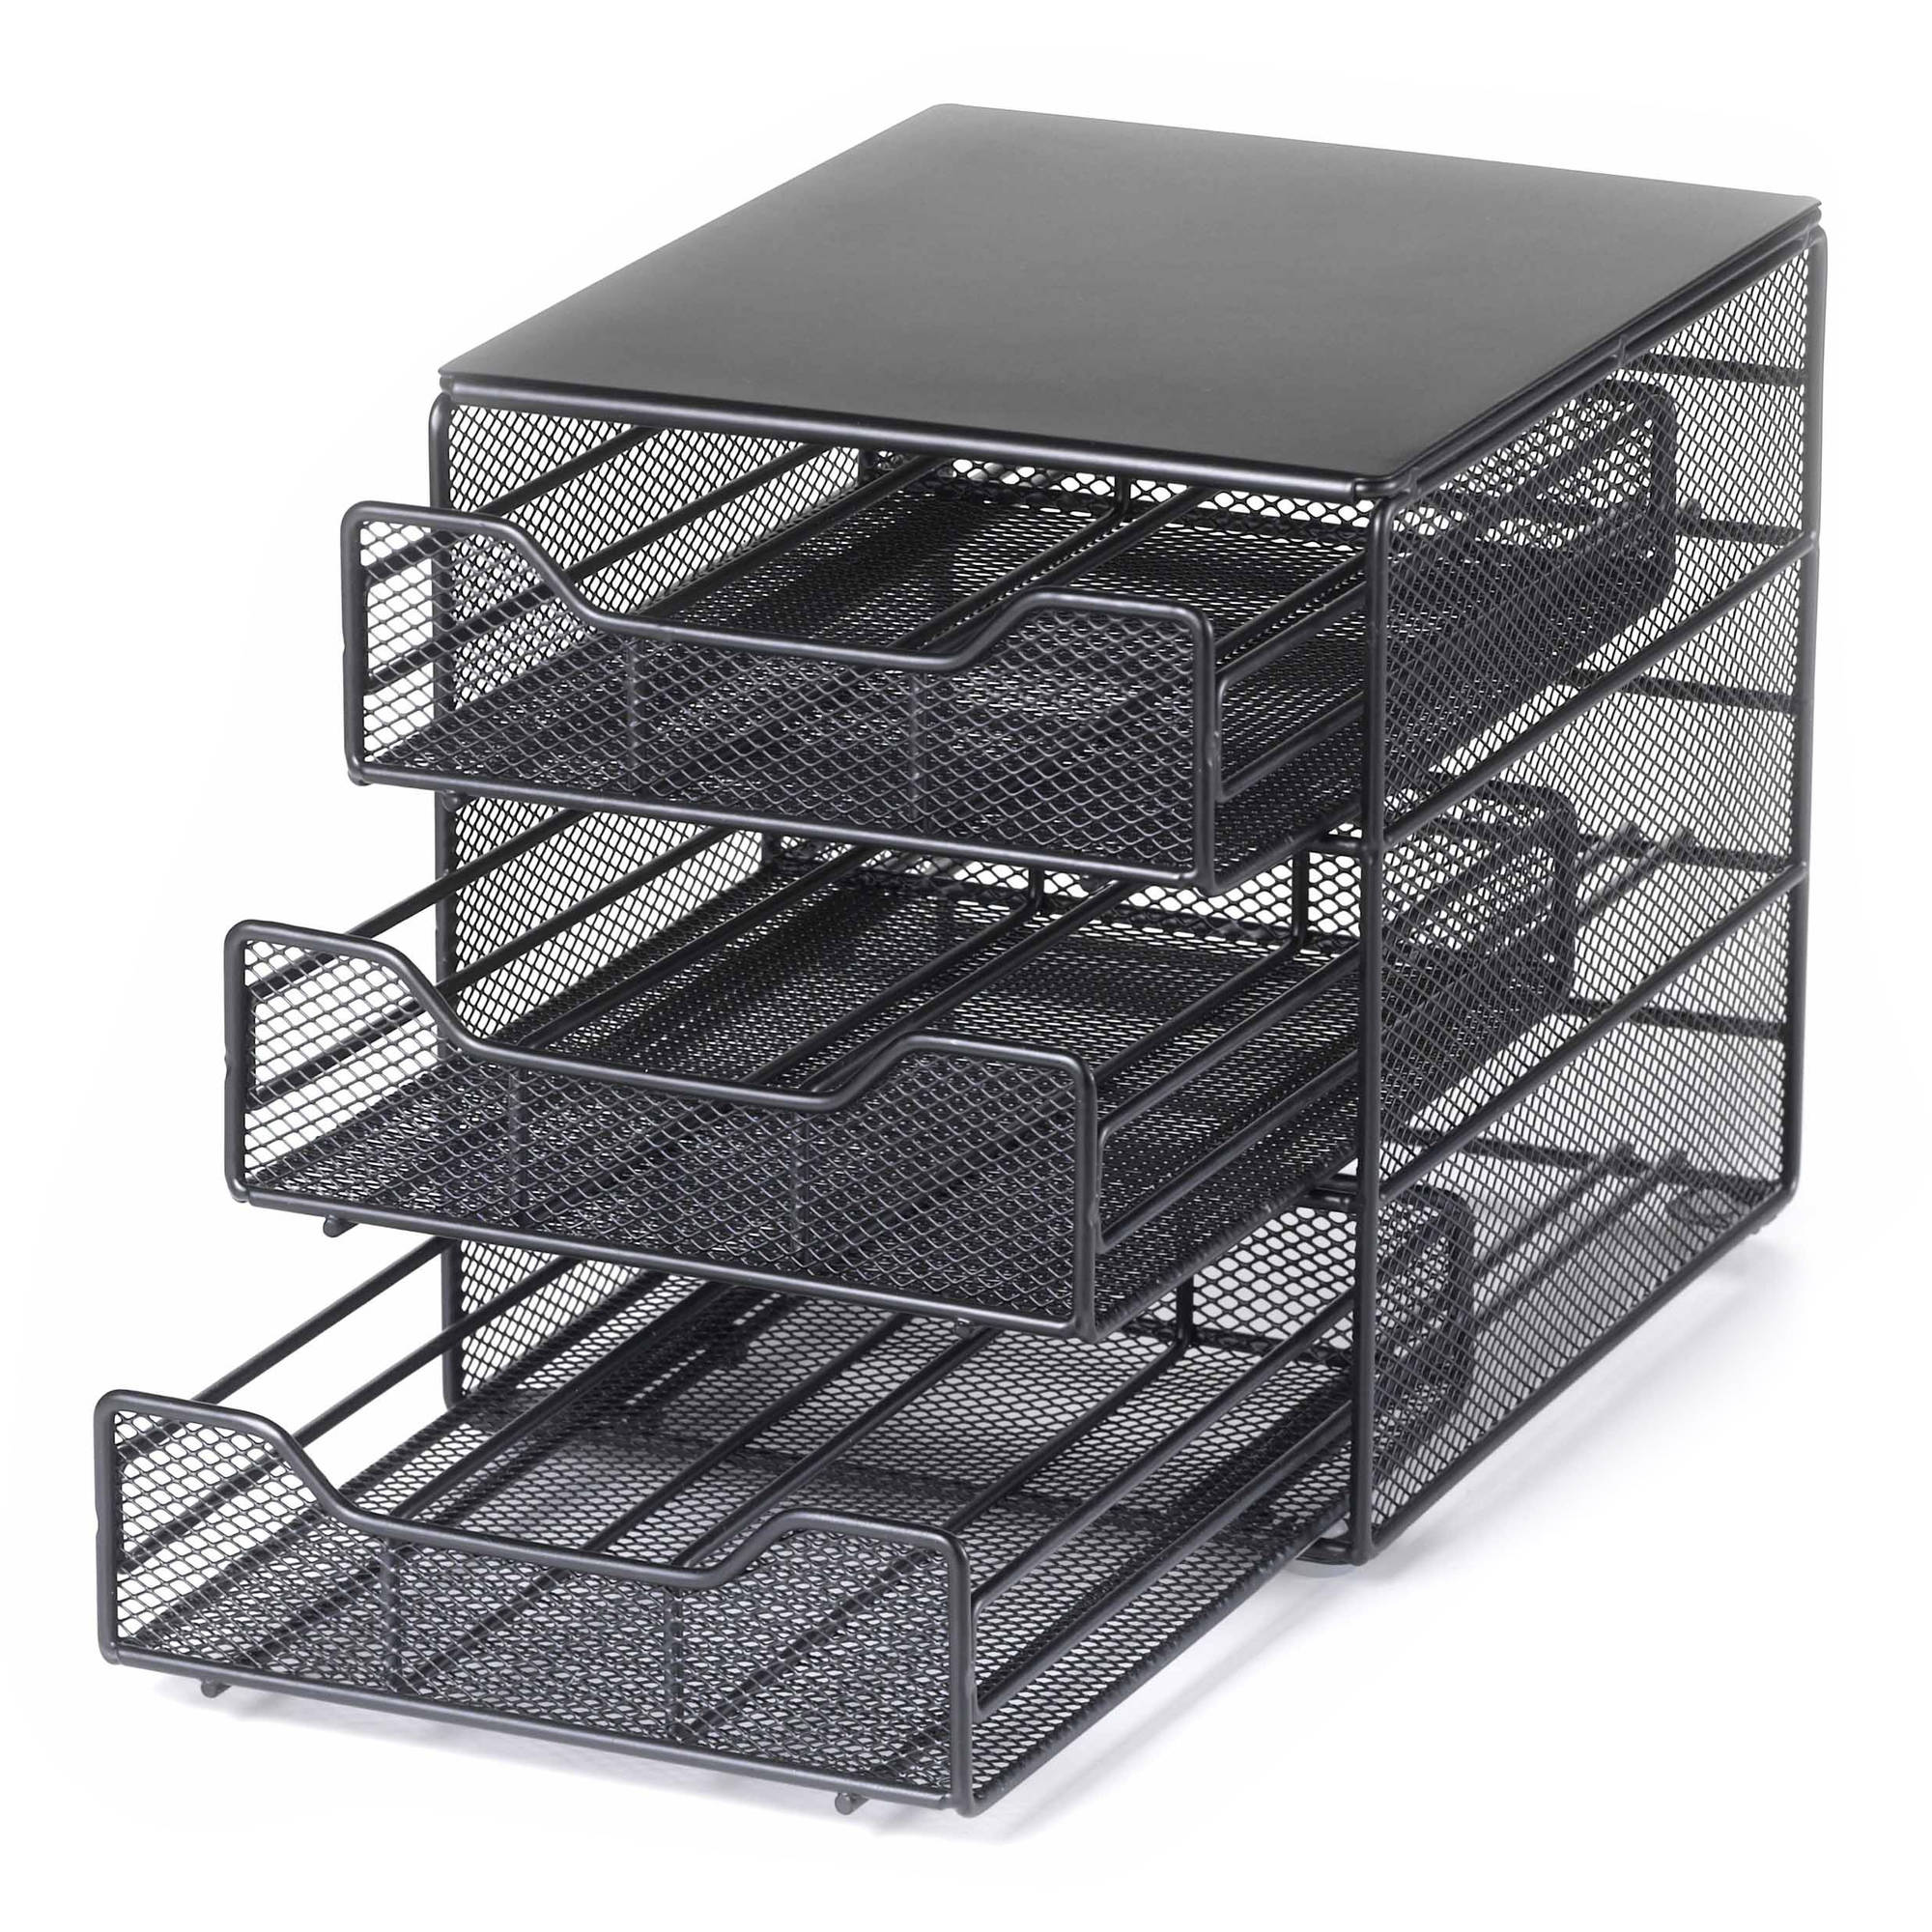 Keurig Approved 3-tier Drawer - 36 Capacity